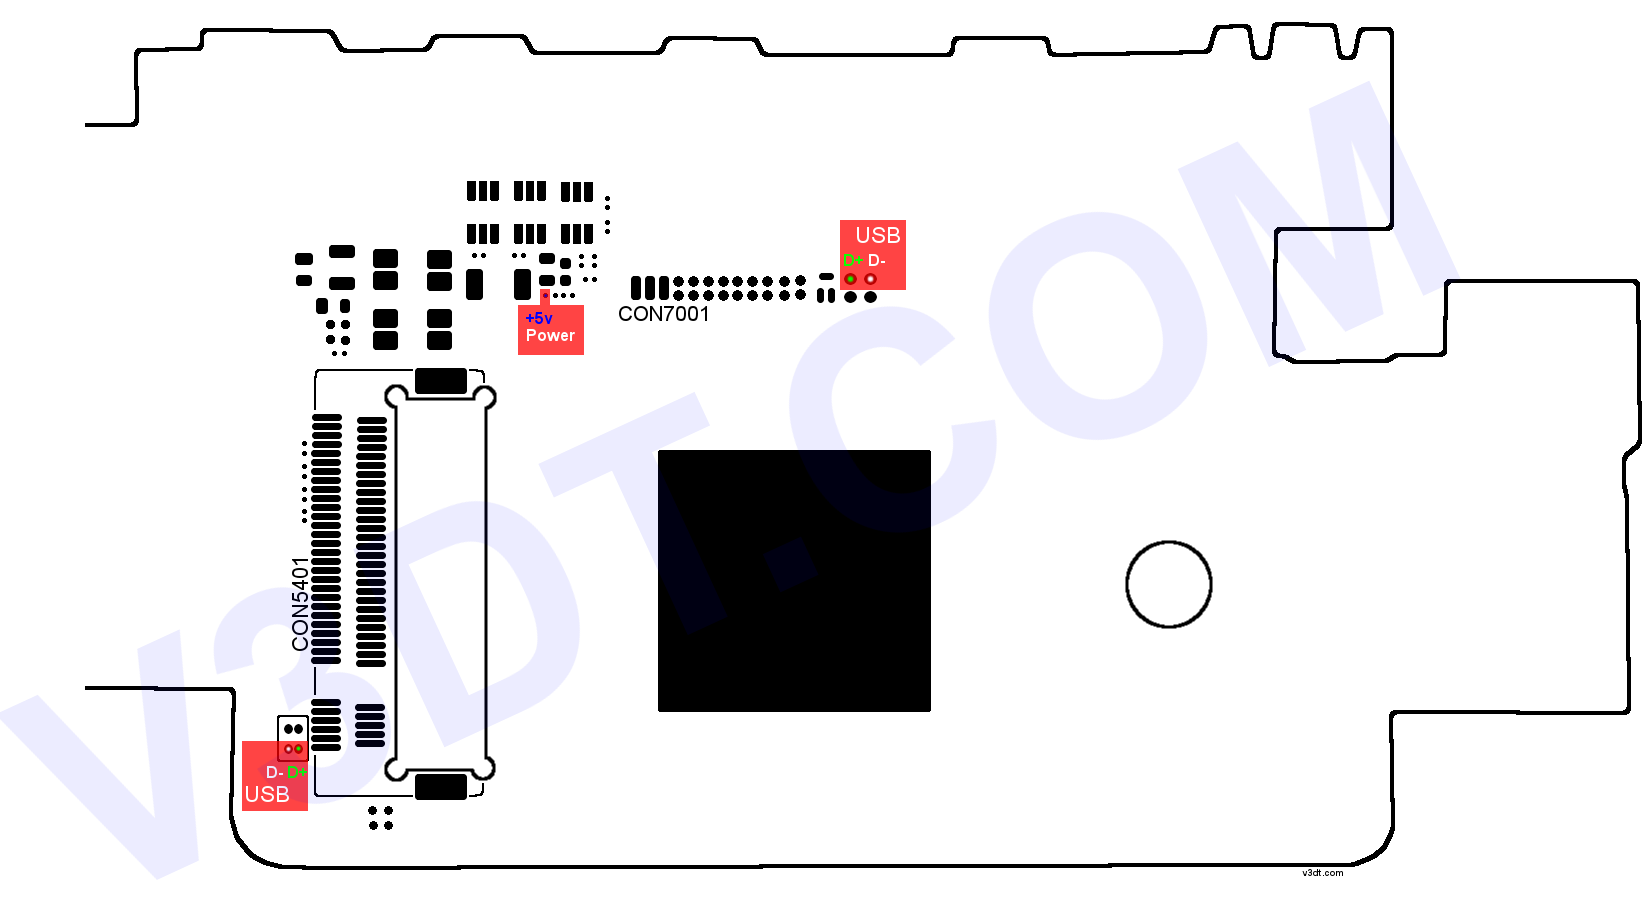 Dell Venue 5830 Computer Schematics Data Circuit Diagram Help Rewiring 70s Turntable Converting Xlr Gt Rca Preamp Diyaudio Adding 128gb Of Flash To The 8 Pro Tabletpcreview Com Rh Forum